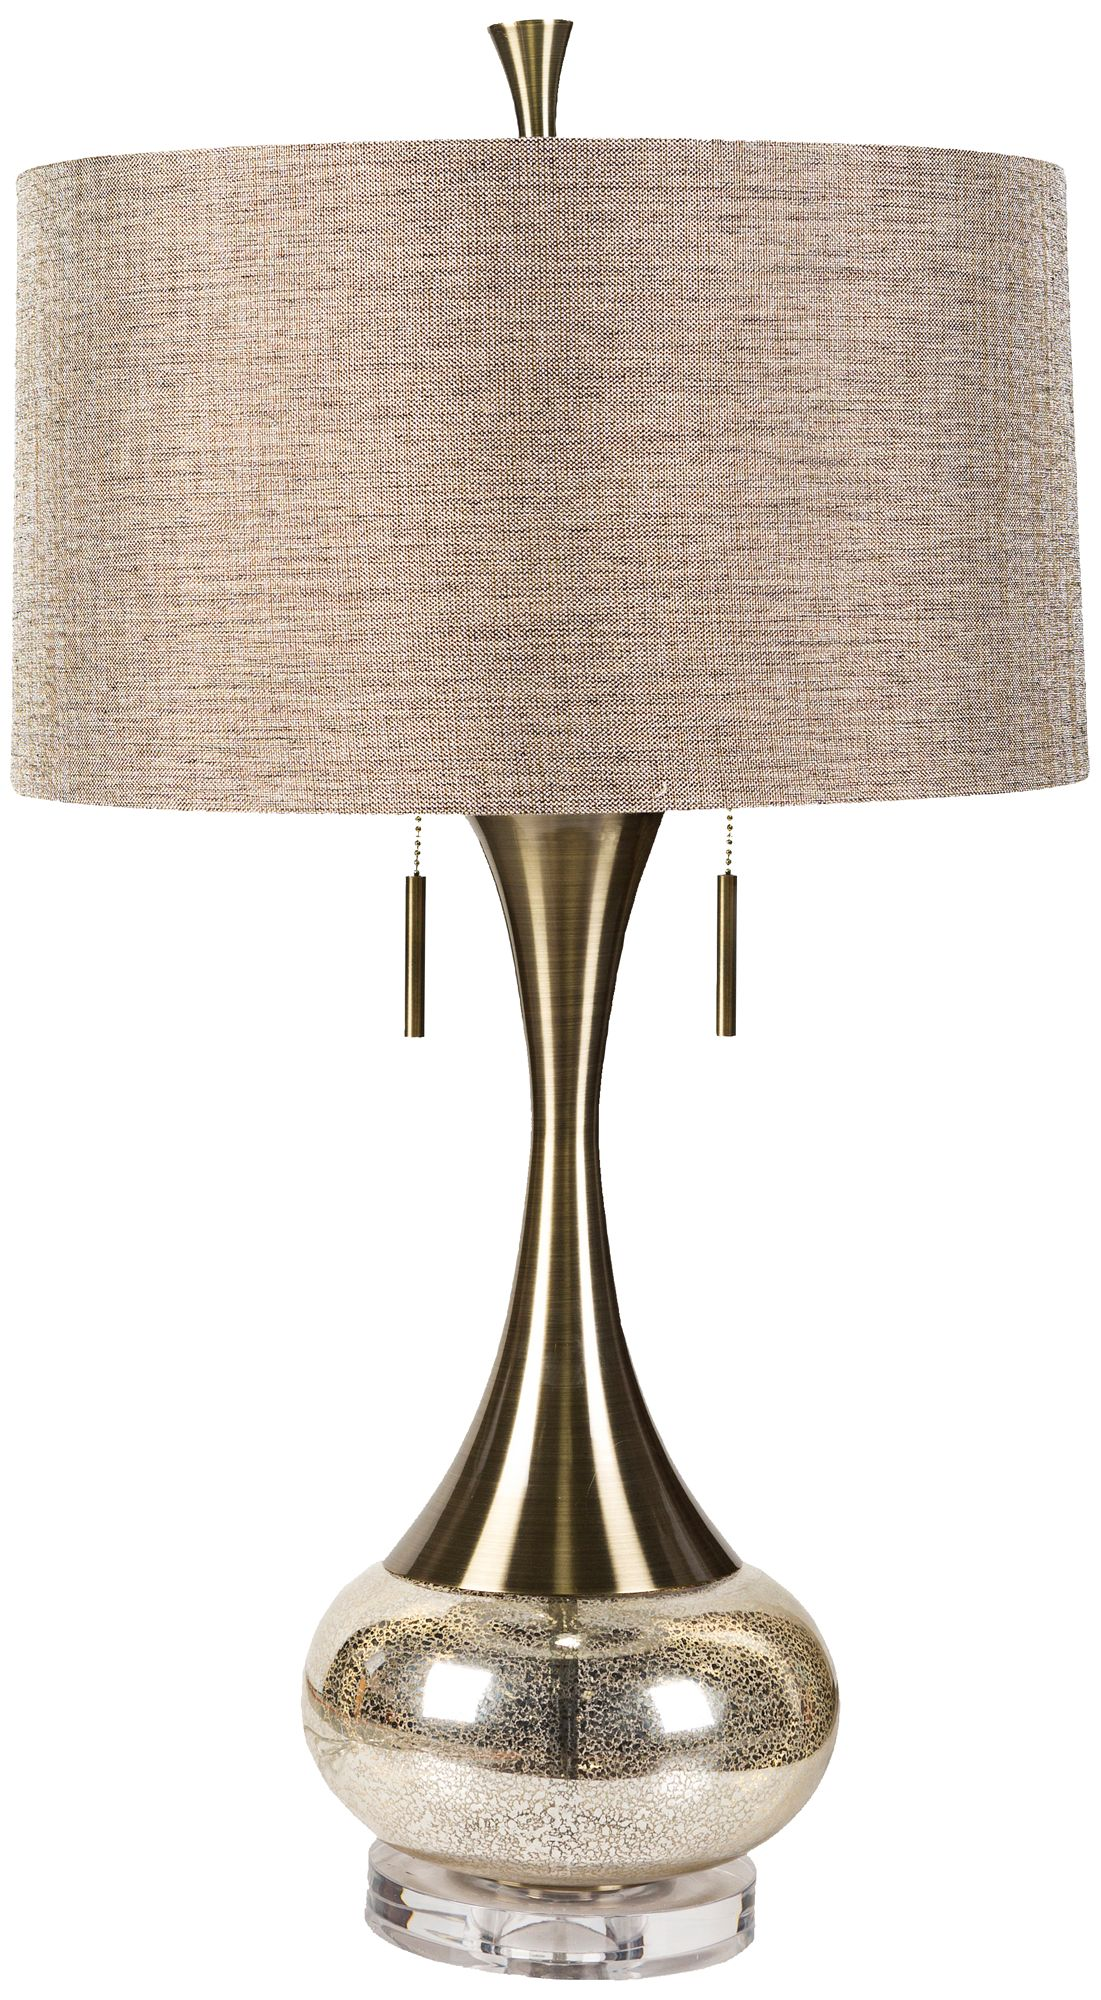 Roxy Aged Brass And Mercury Glass Table Lamp